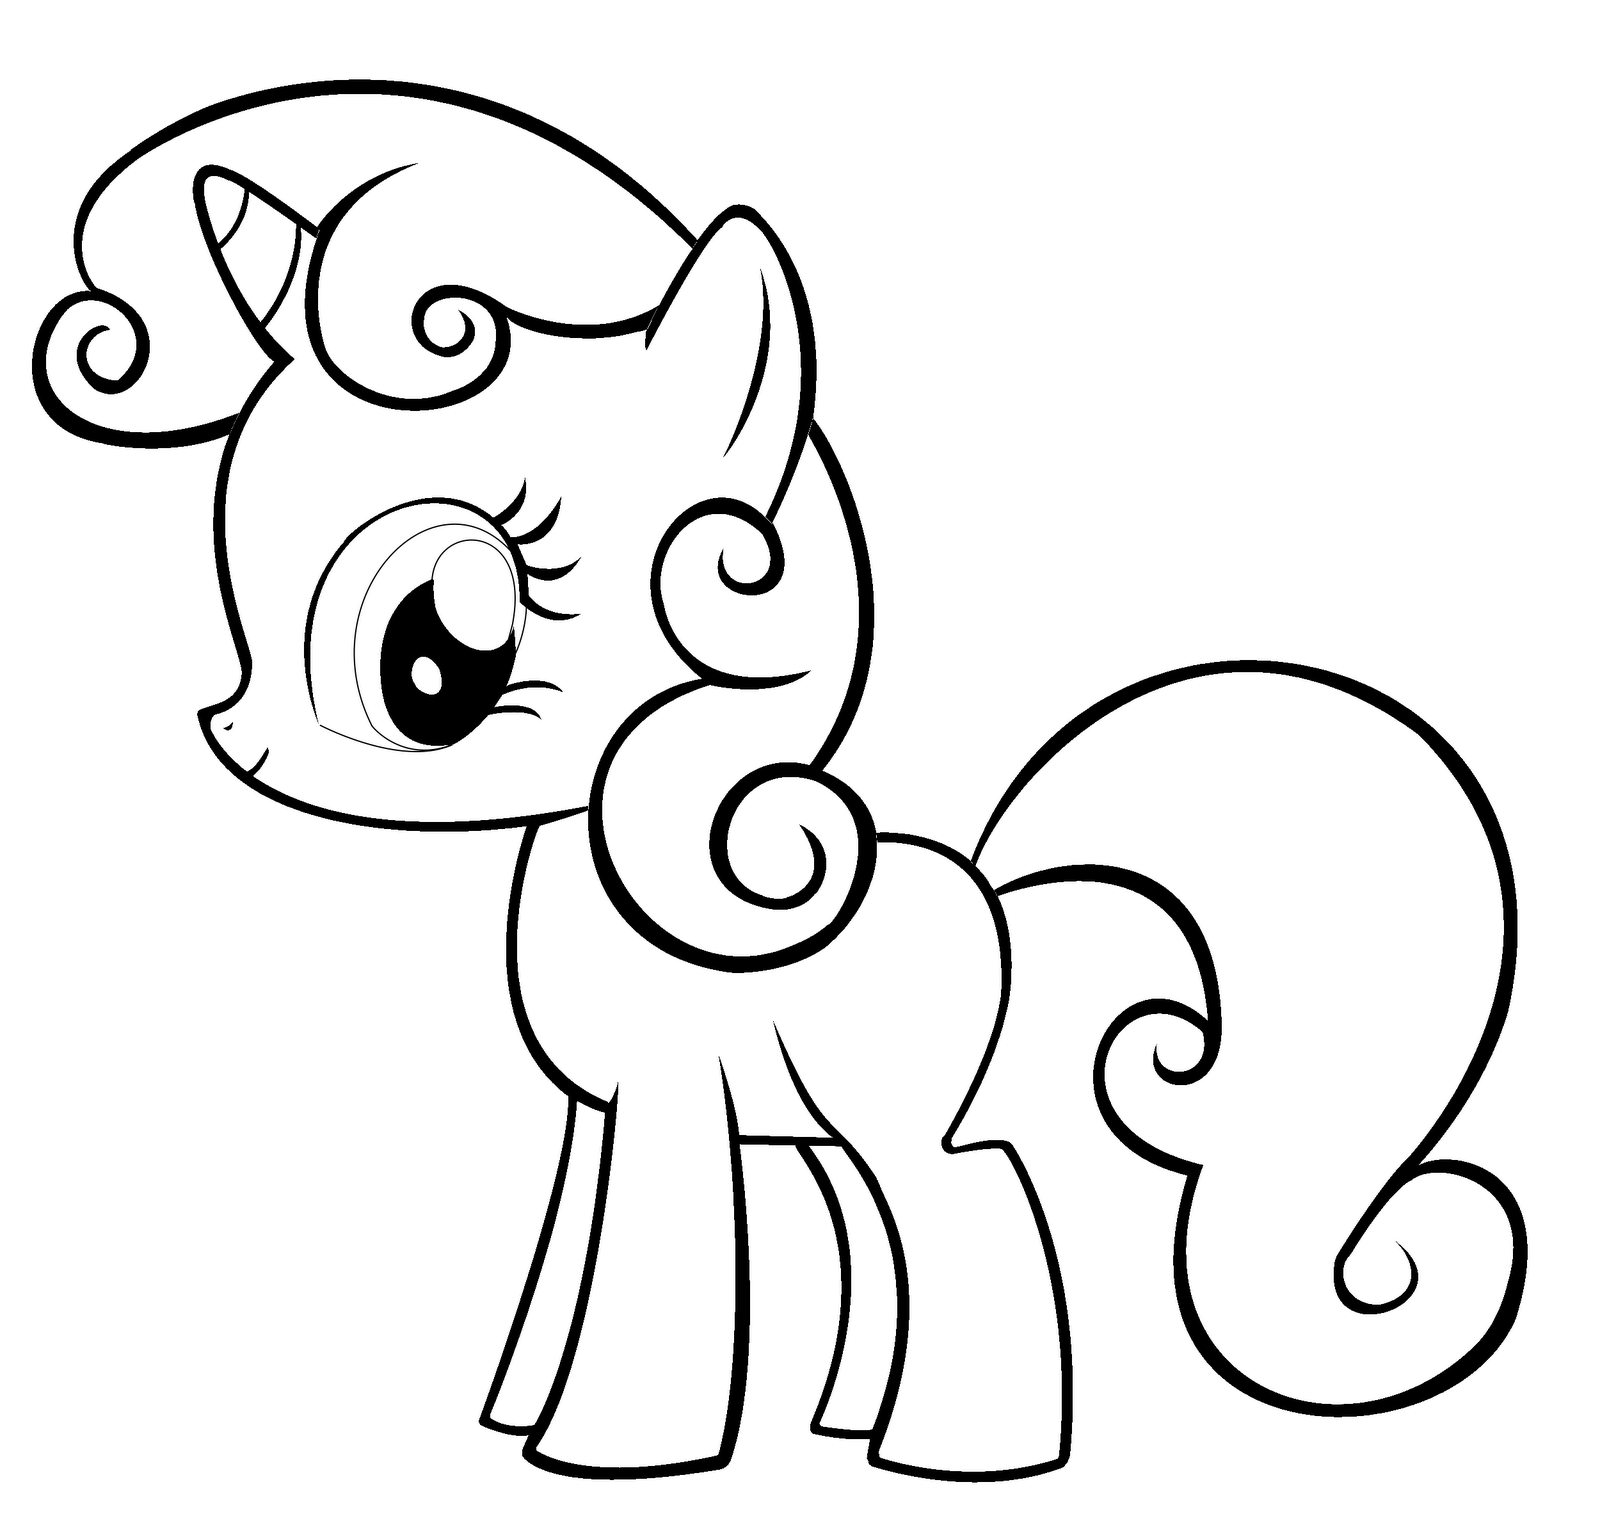 My Little Pony Coloring Pages Cutie Mark : Free printable my little pony coloring pages for kids